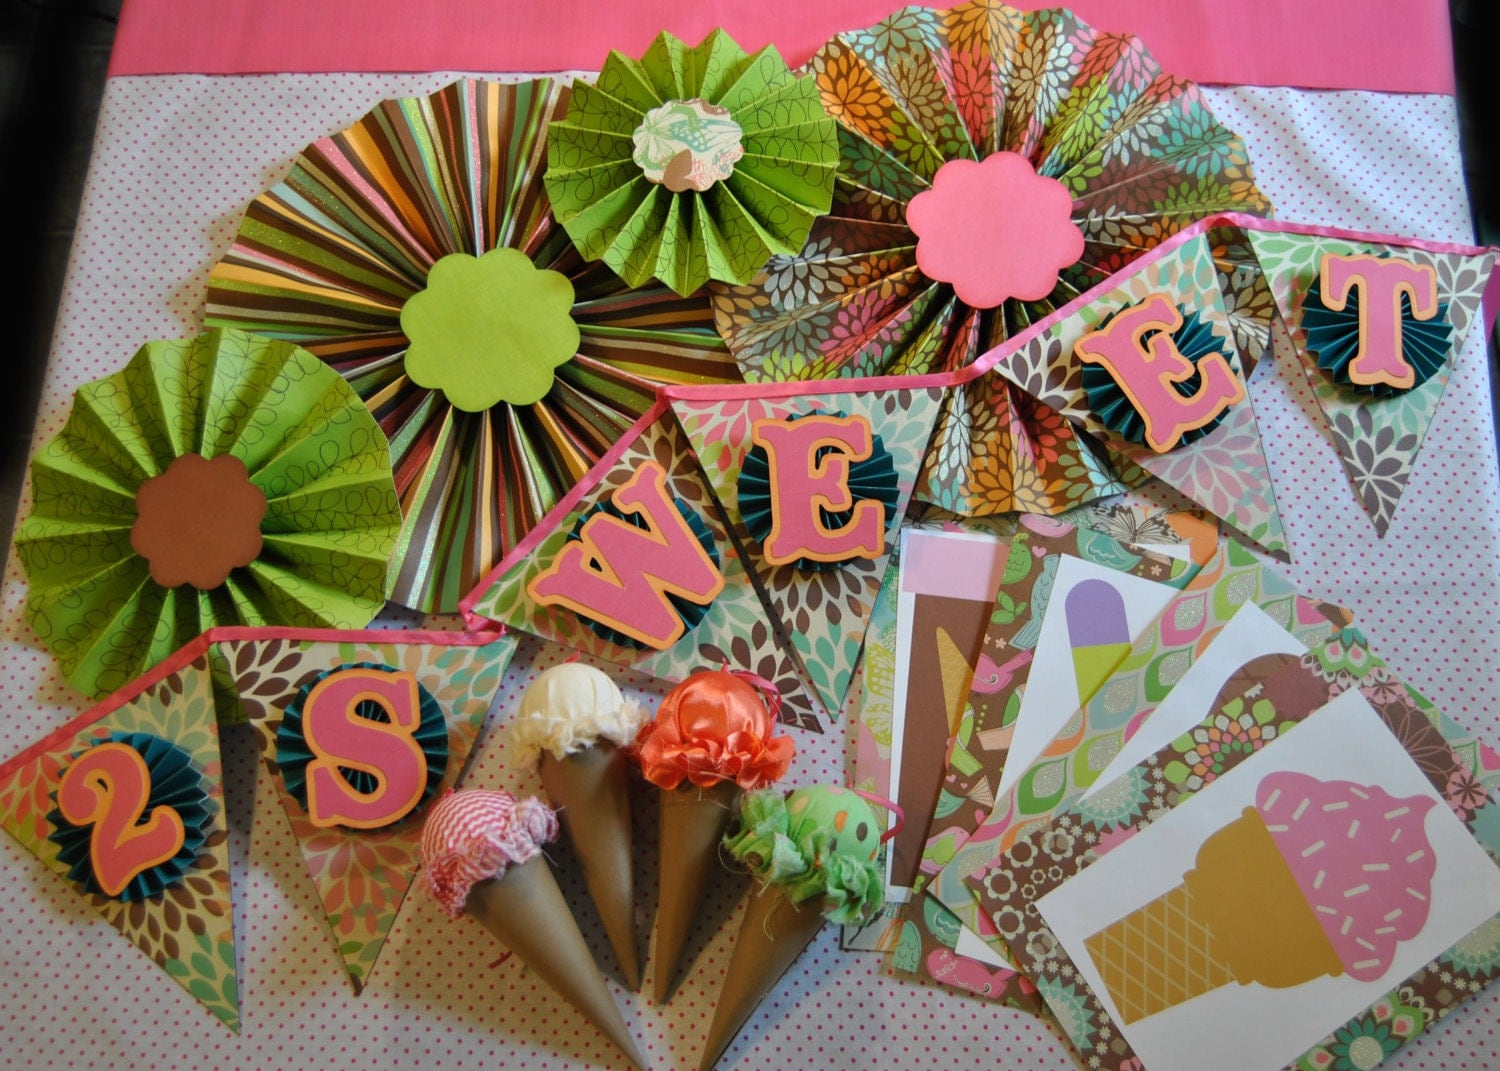 sale ice cream party decorations pink green orange brown blue